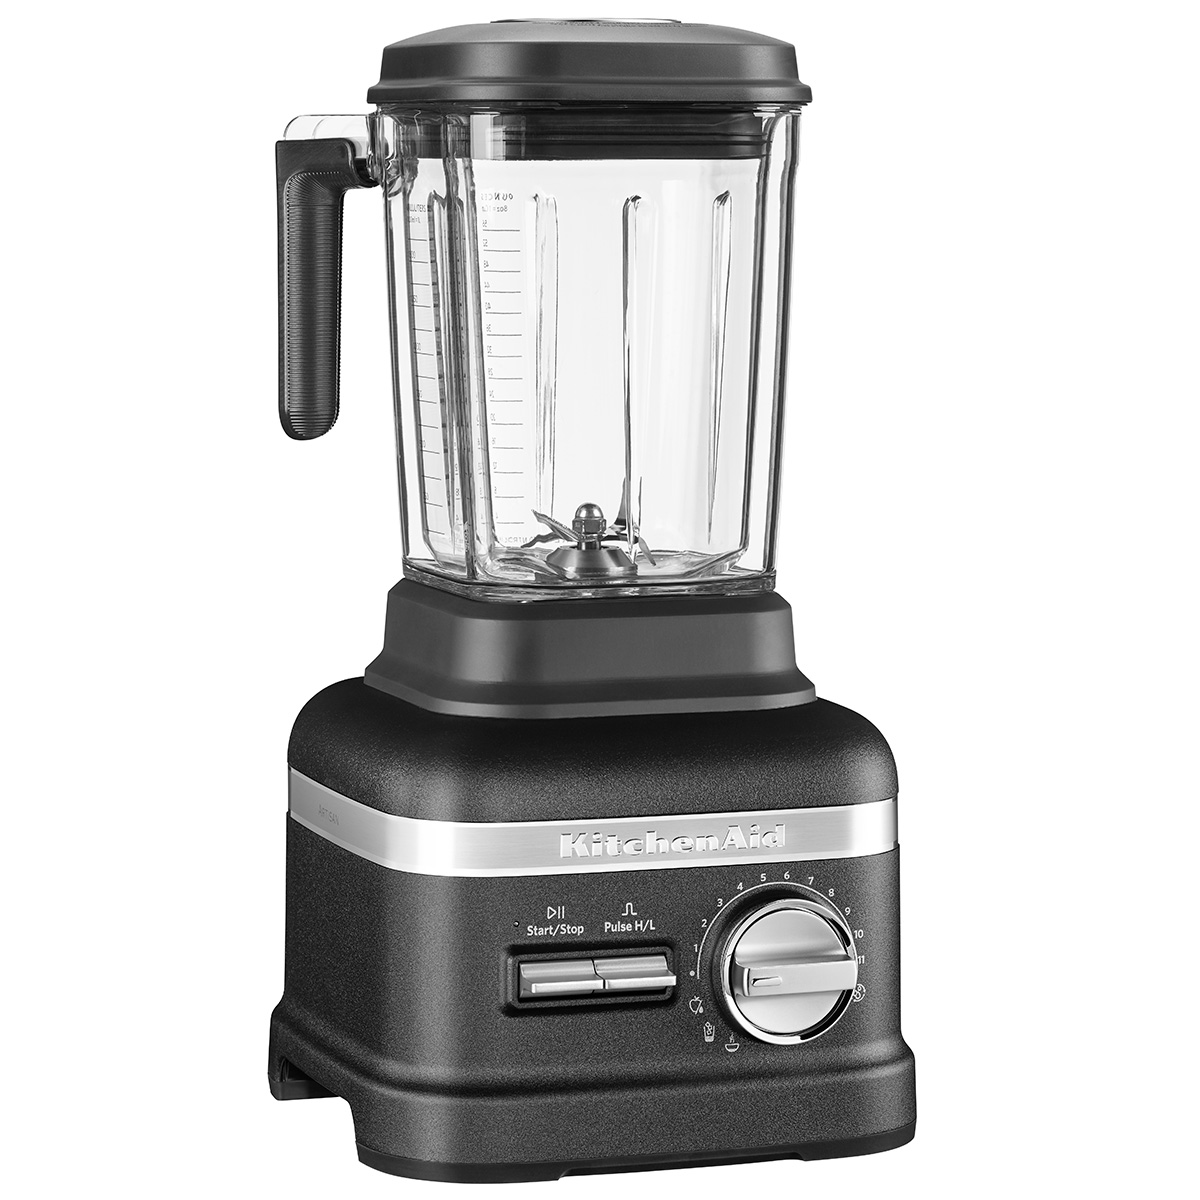 Image of   KitchenAid bordblender - Artisan Power Plus - Sort